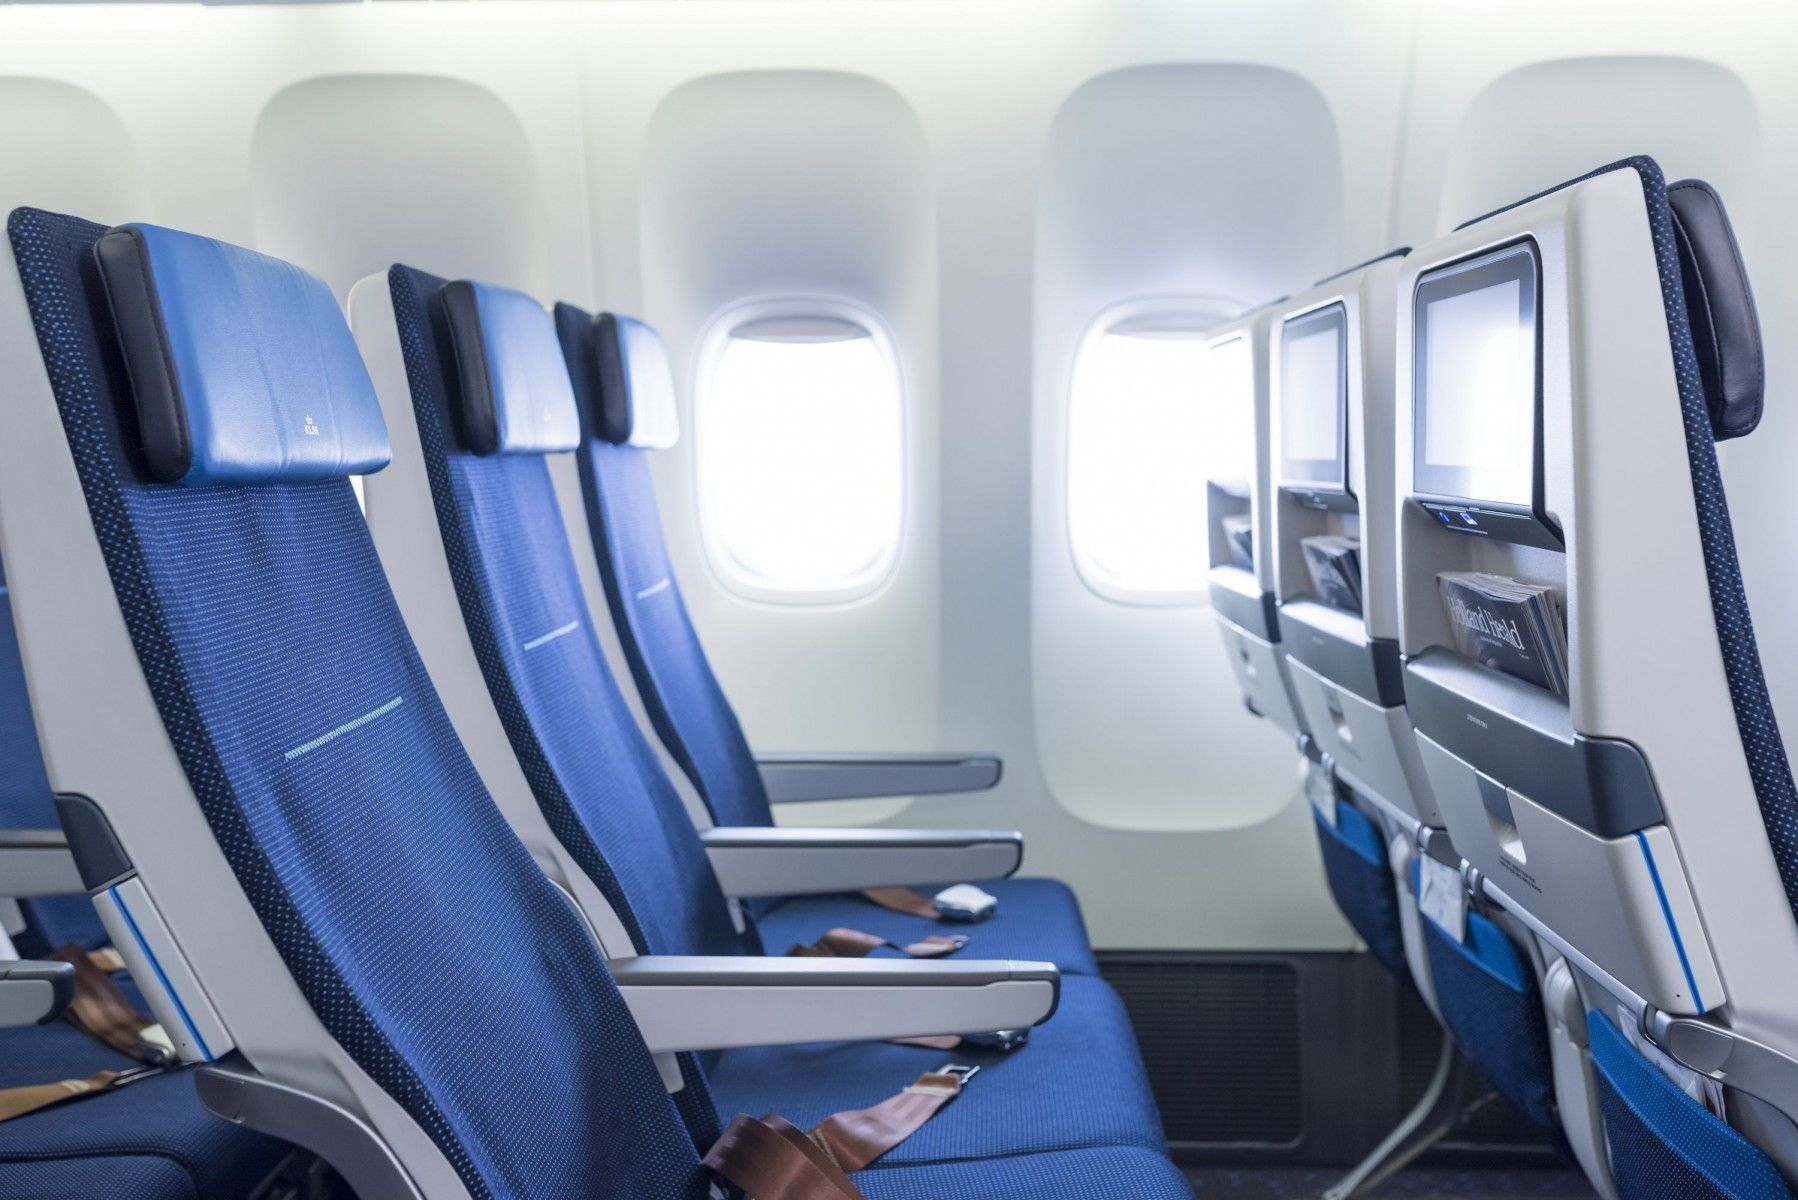 Klm Economy Seats in 2020 Economy seats, Fear of flying